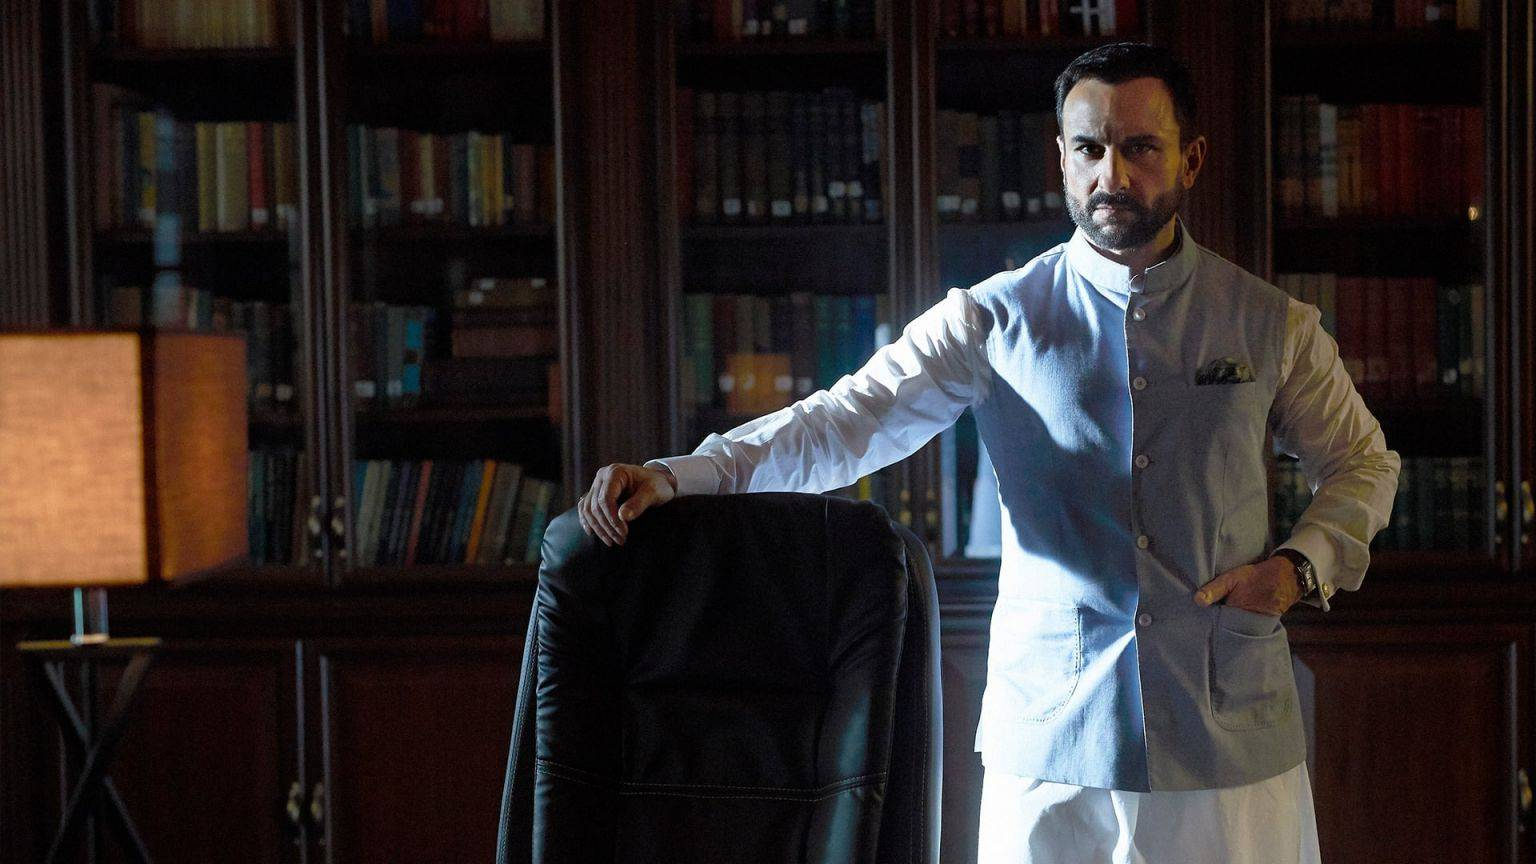 Ophef in India over Amazon Prime Video-serie 'Tandav', maker biedt excuses aan